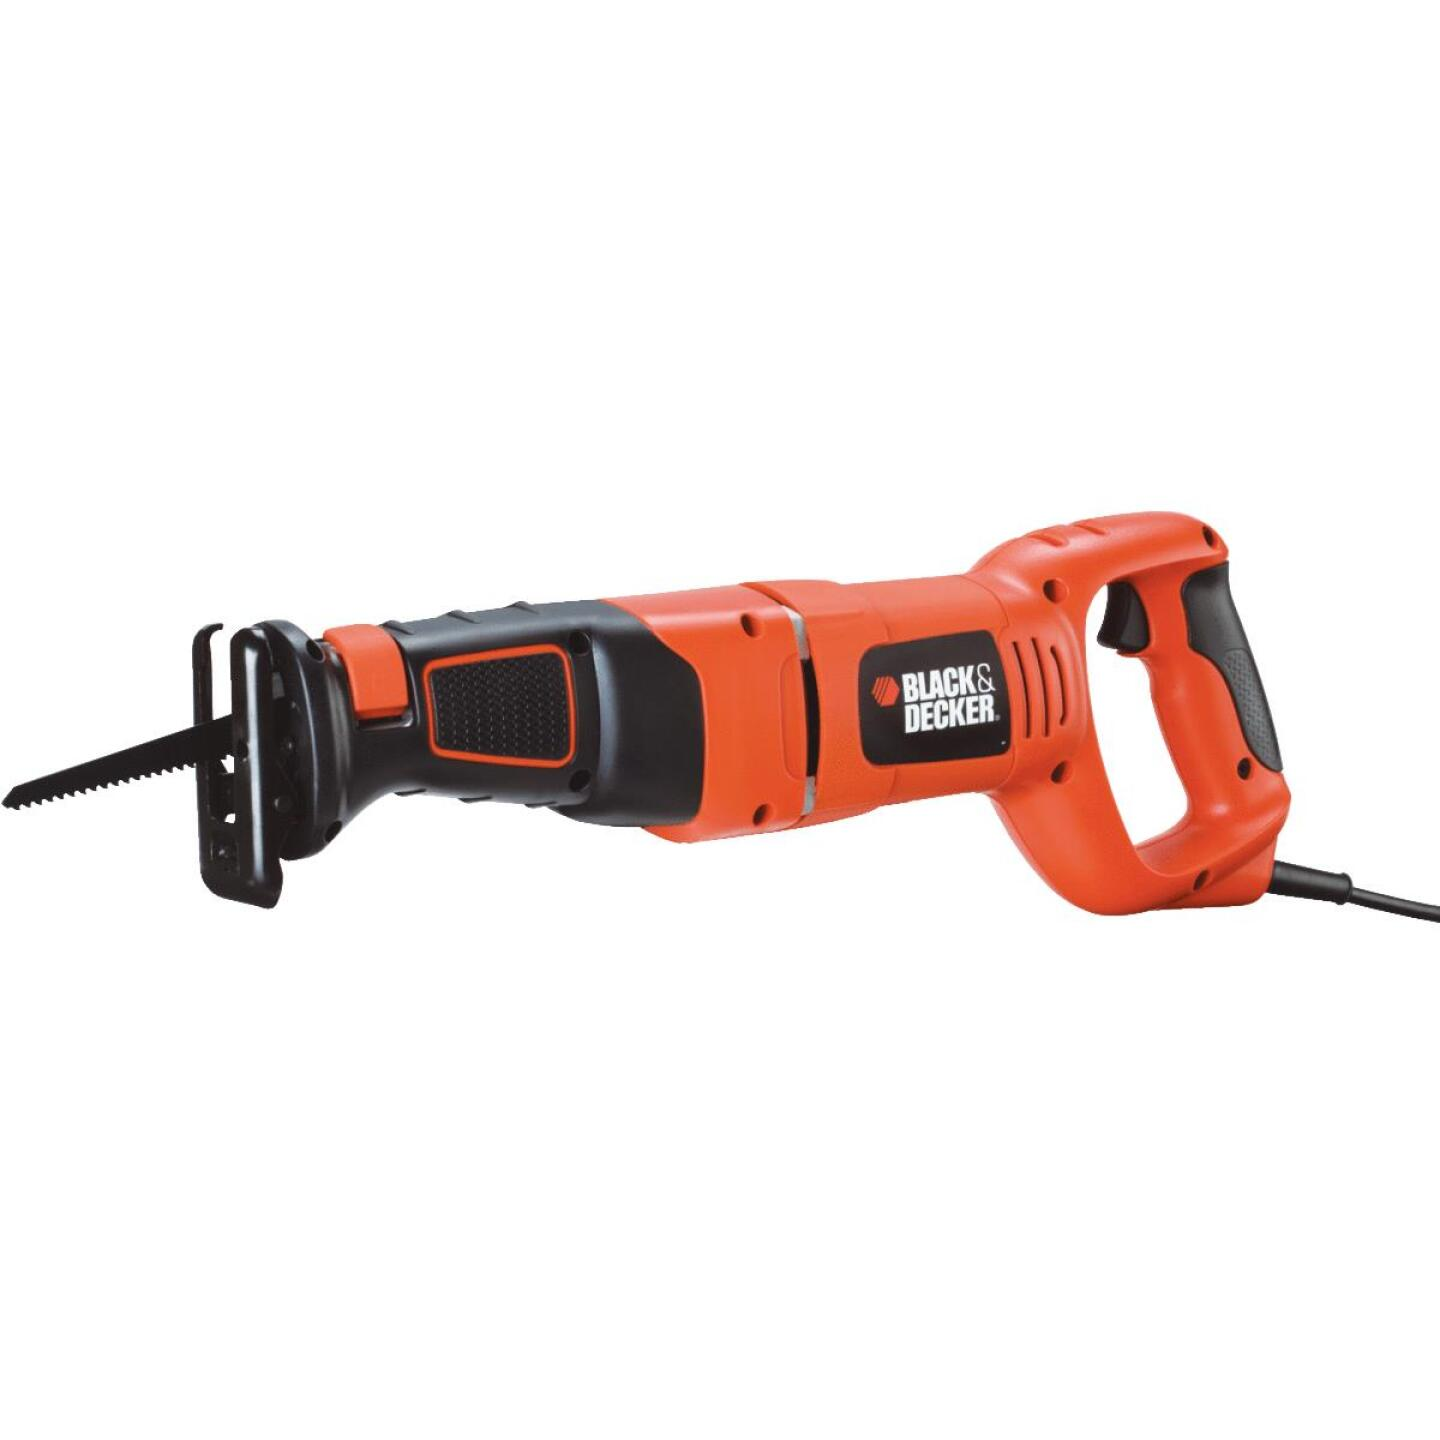 Black & Decker 8.5-Amp Reciprocating Saw Kit Image 3